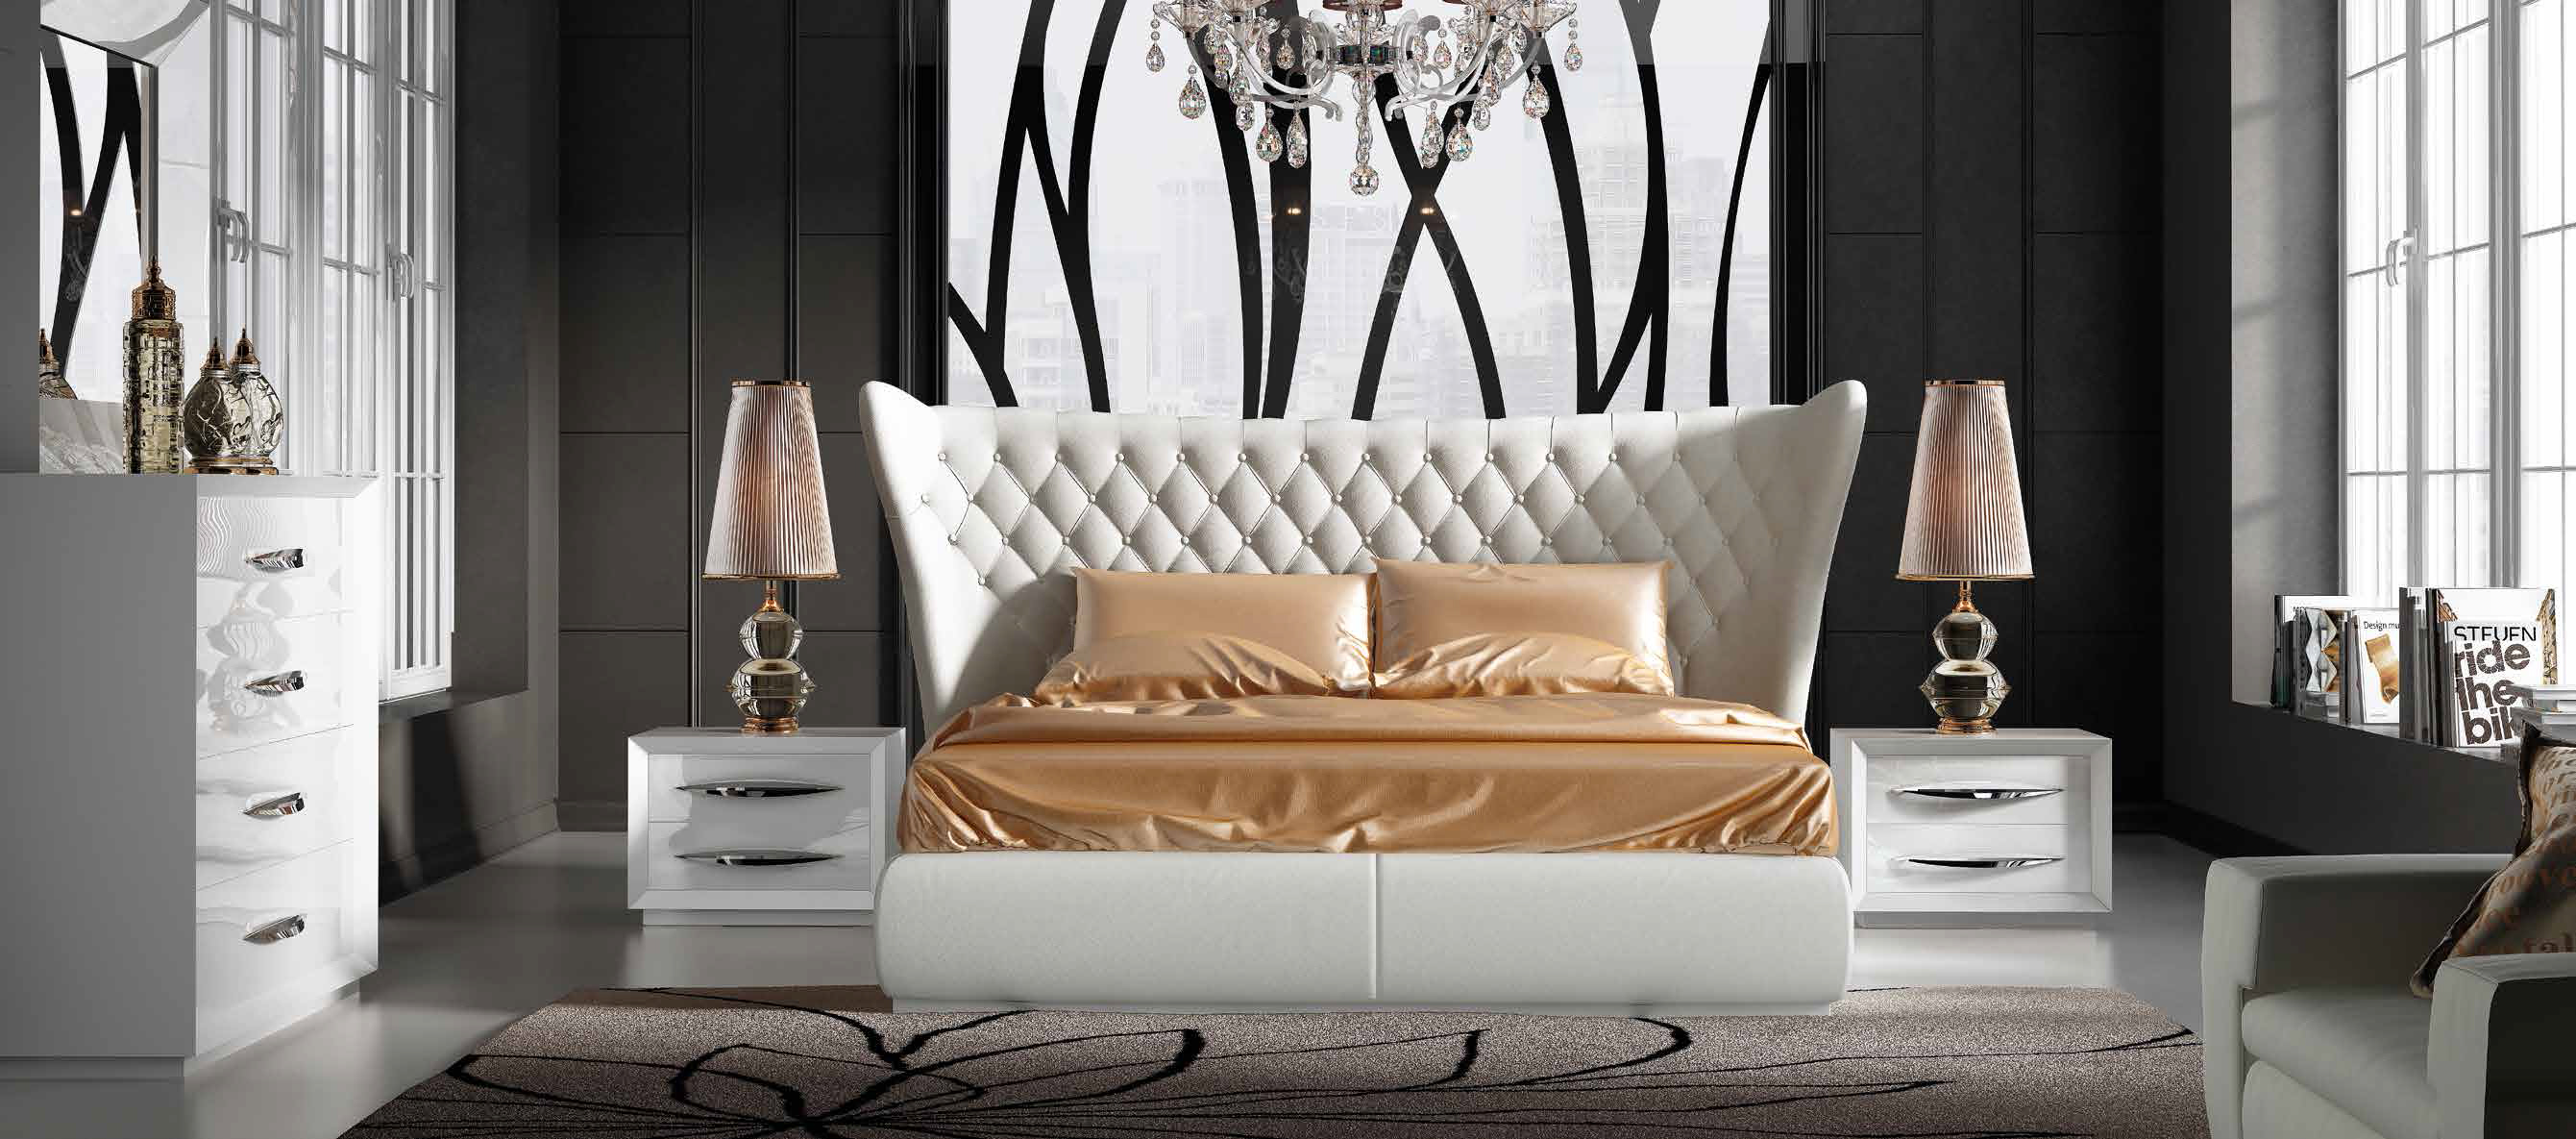 Brands Franco Furniture Bedrooms vol1, Spain DOR 74